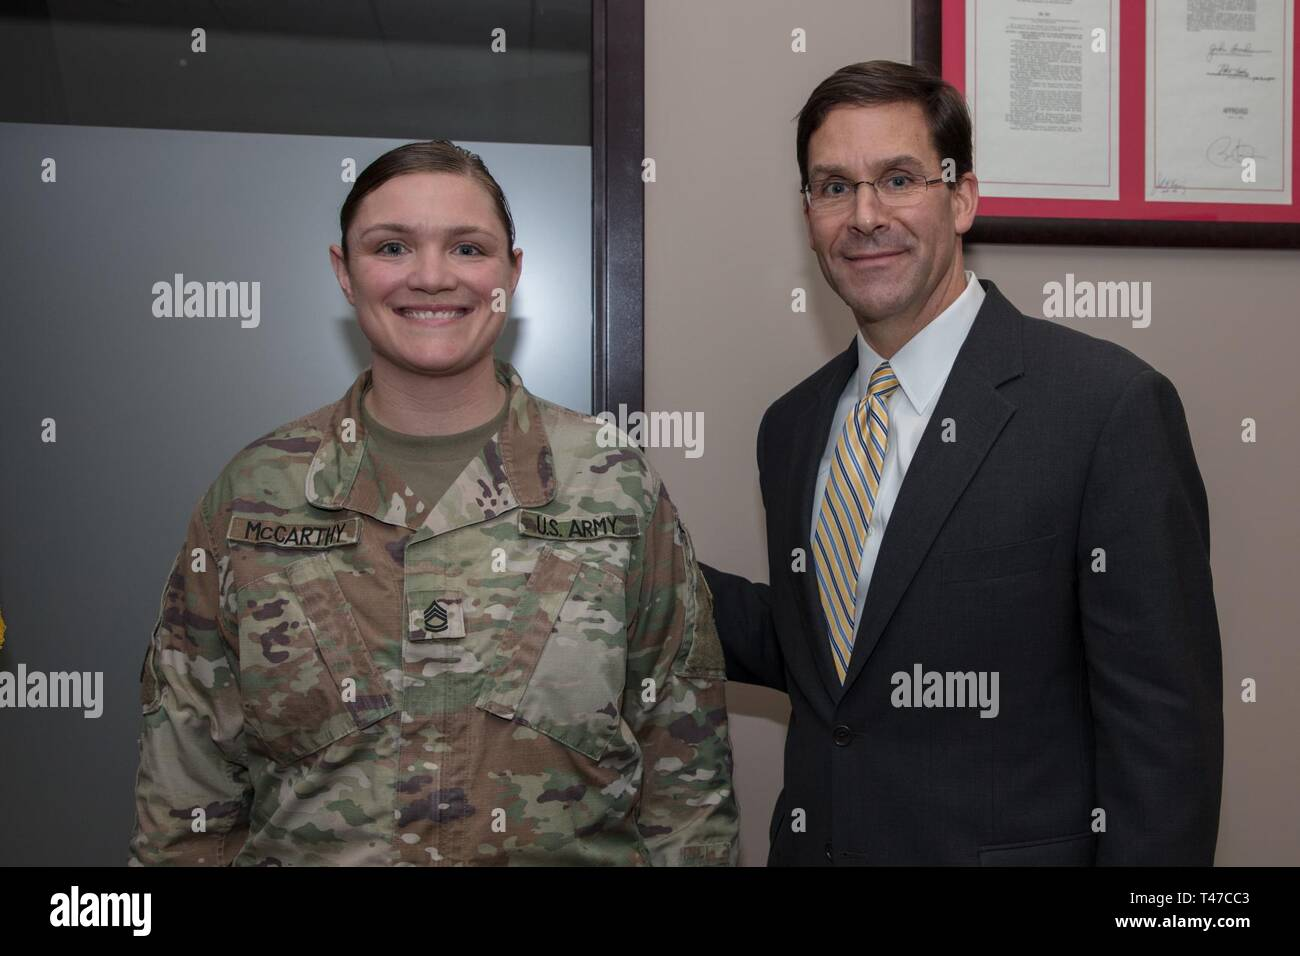 SFC Melissa McCarthy, team lead for the Massachusetts Army National Guard Joint Forces (JFHQ) Headquarters Headquarters Detachment (HHD) G1 directorate, receives a coin from Dr. Mark T. Esper, Secretary of the Army. McCarthy's team is comprised of nine soldiers who are in charge of updating 5,800 service members records.     Sec. Esper joined Maj. Gen. Gary W. Keefe, the Adjutant General of the Massachusetts National Guard and other senior leadership during a visit to Joint Force Headquarters of the Massachusetts National Guard, here, March 15, 2019. After an awards ceremony held to recognize  - Stock Image